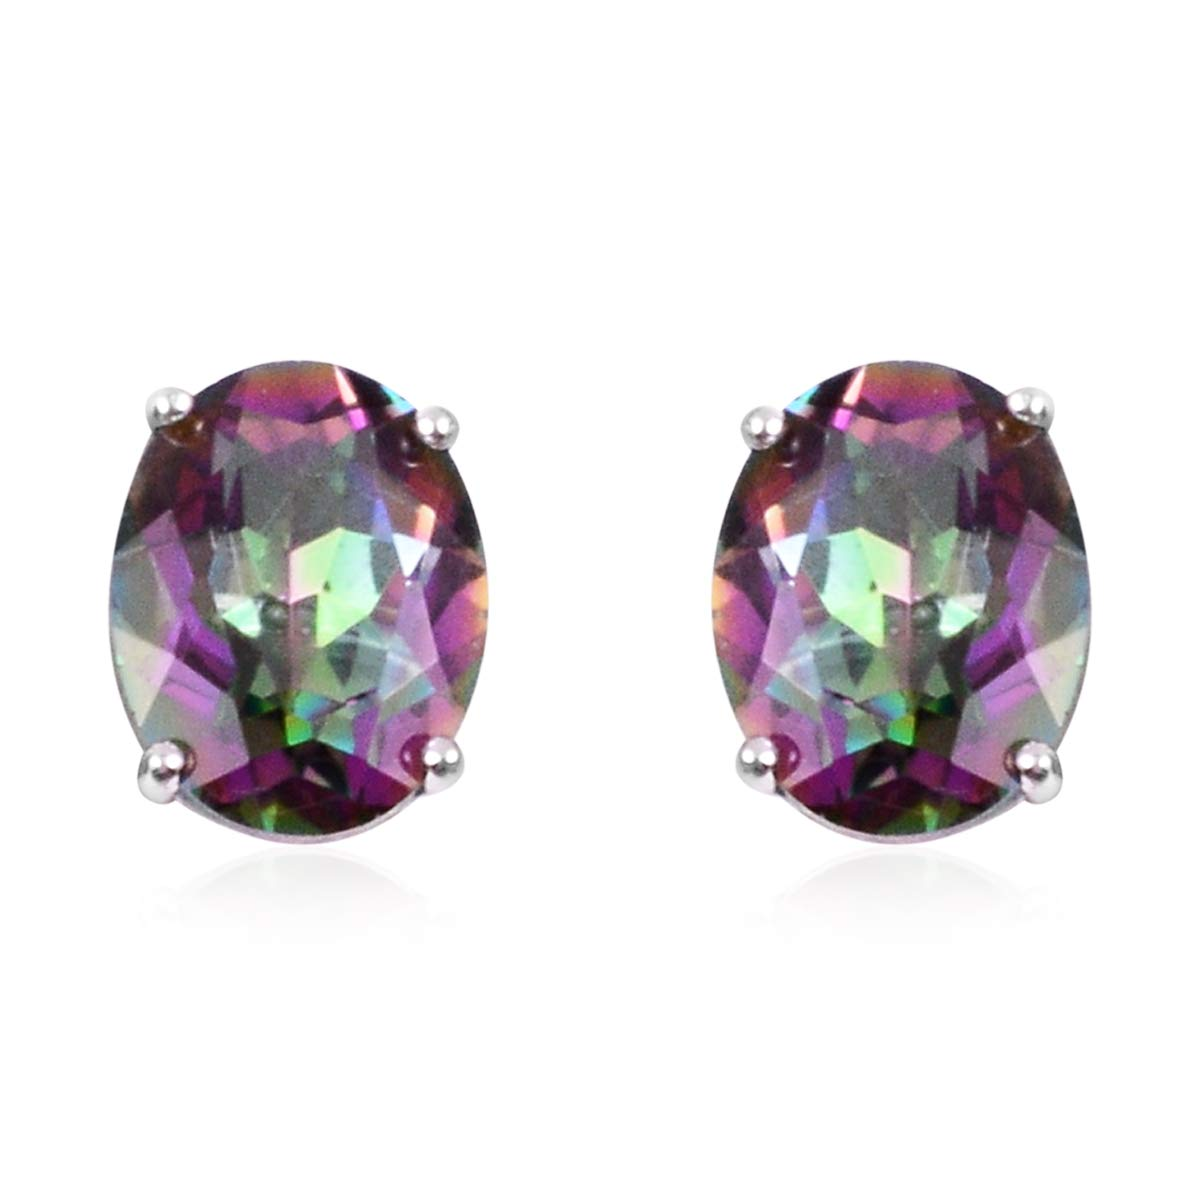 Stud Solitaire Earrings 925 Sterling Silver Oval Mystic Coated Quartz Gift Jewelry for Women Ct 1.3